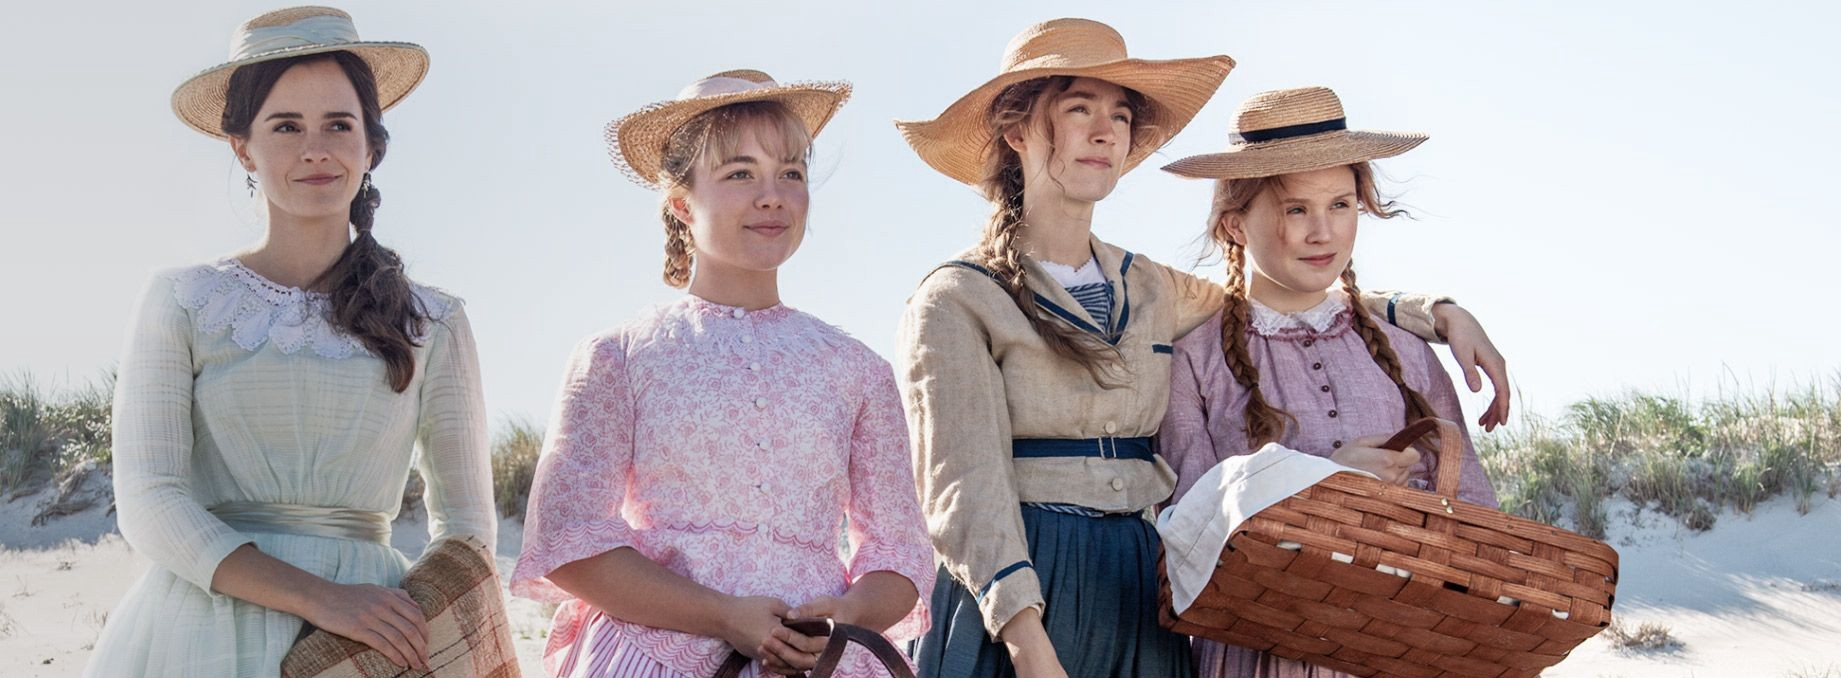 Little Women (2019) – Why is this adaptation so bold?